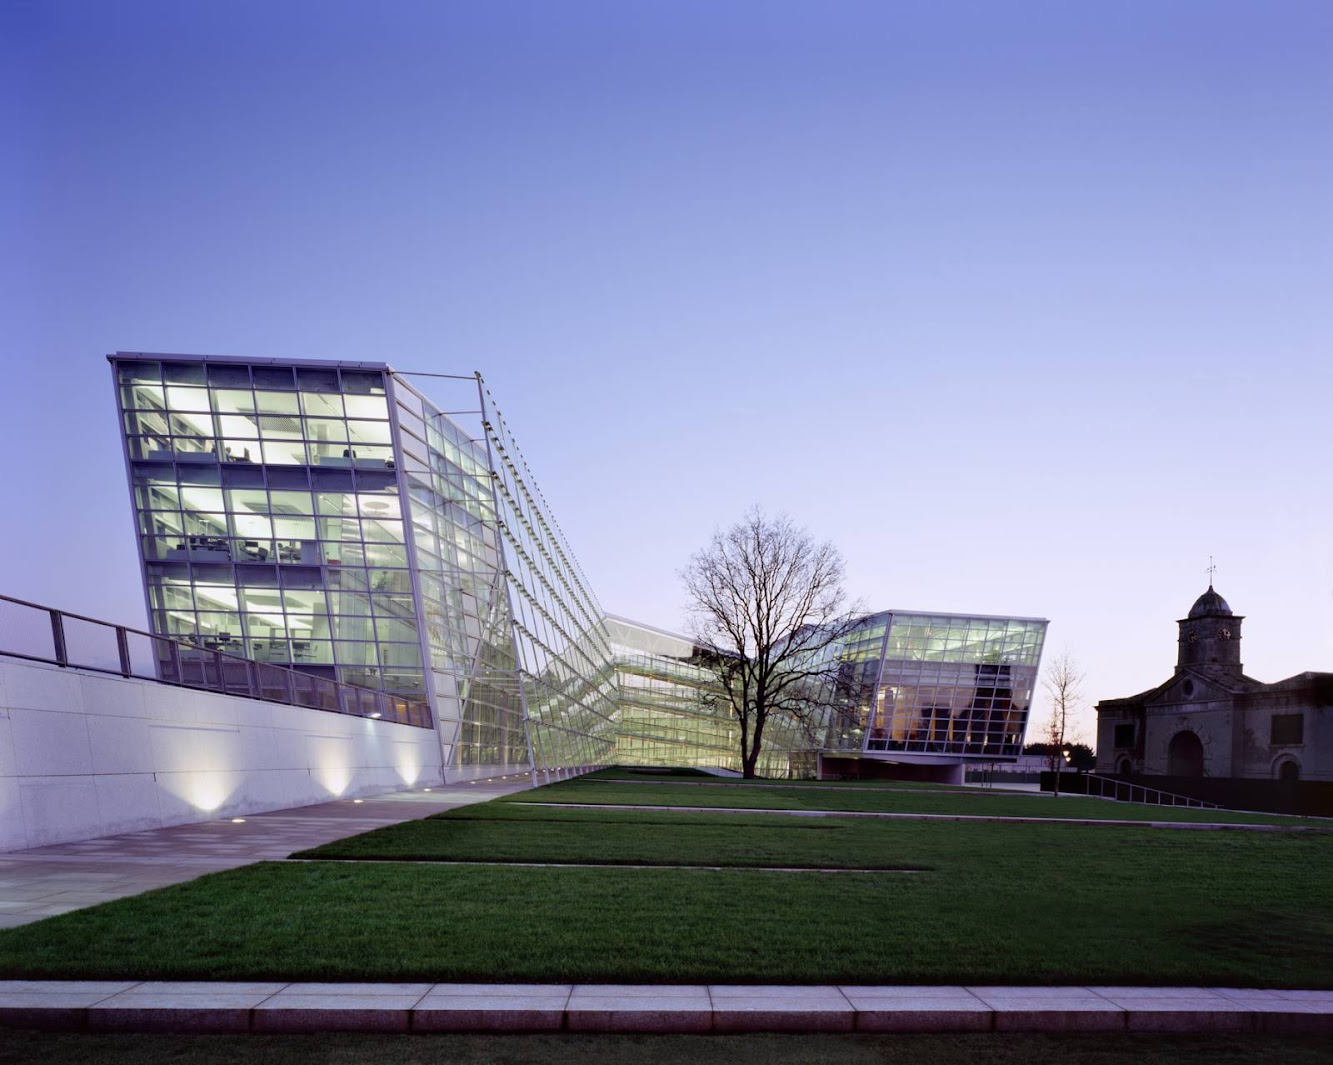 Áras Chill Dara by Heneghan Peng architects